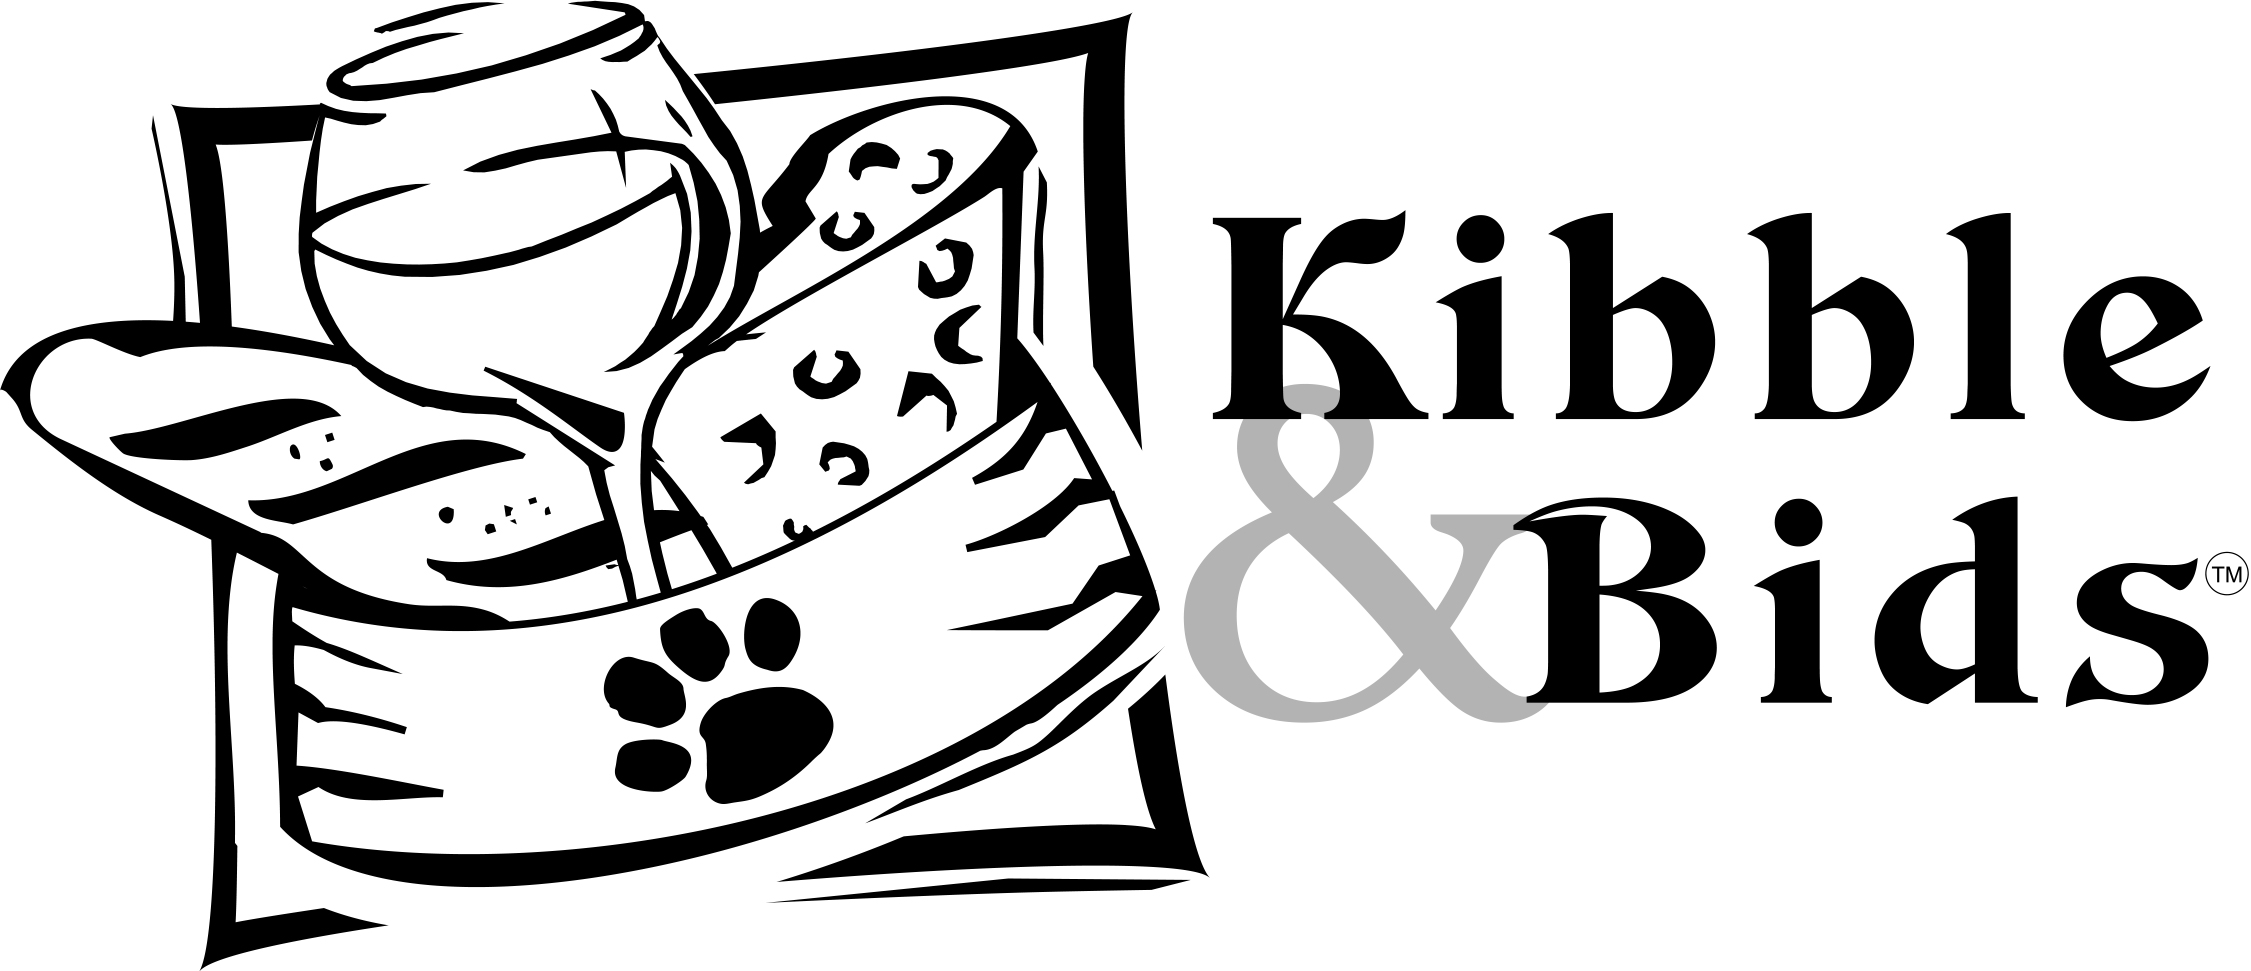 Supporters clipart role responsibility Bound key Kibble Rescue companies